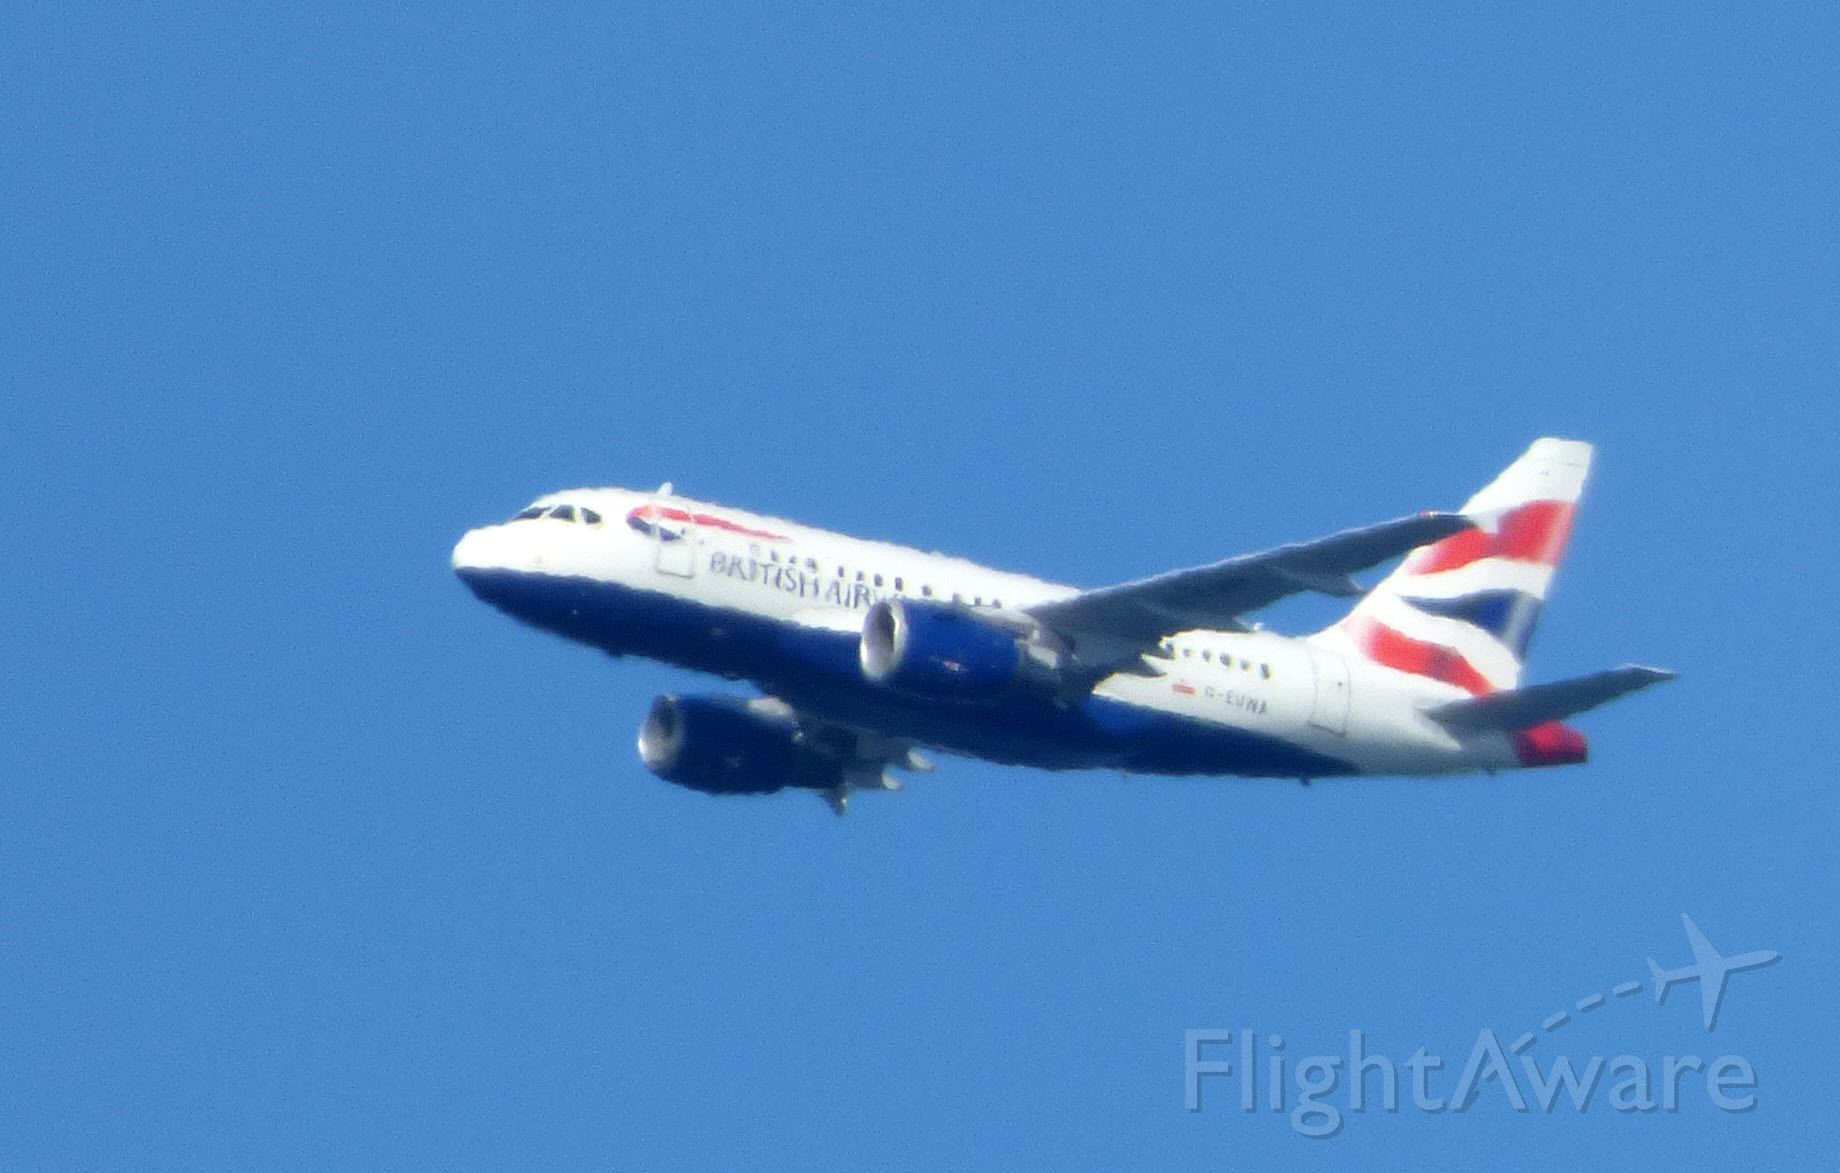 Airbus A318 (G-EUNA) - The smallest of the Airbus fleet this British Airways Airbus A318 is shown minutes away from crossing the North Atlantic with an arrival shortly into JFK in the Spring of 2017. Tough shooting with the air and water vapor and max zoom rendering this a bit blurry.